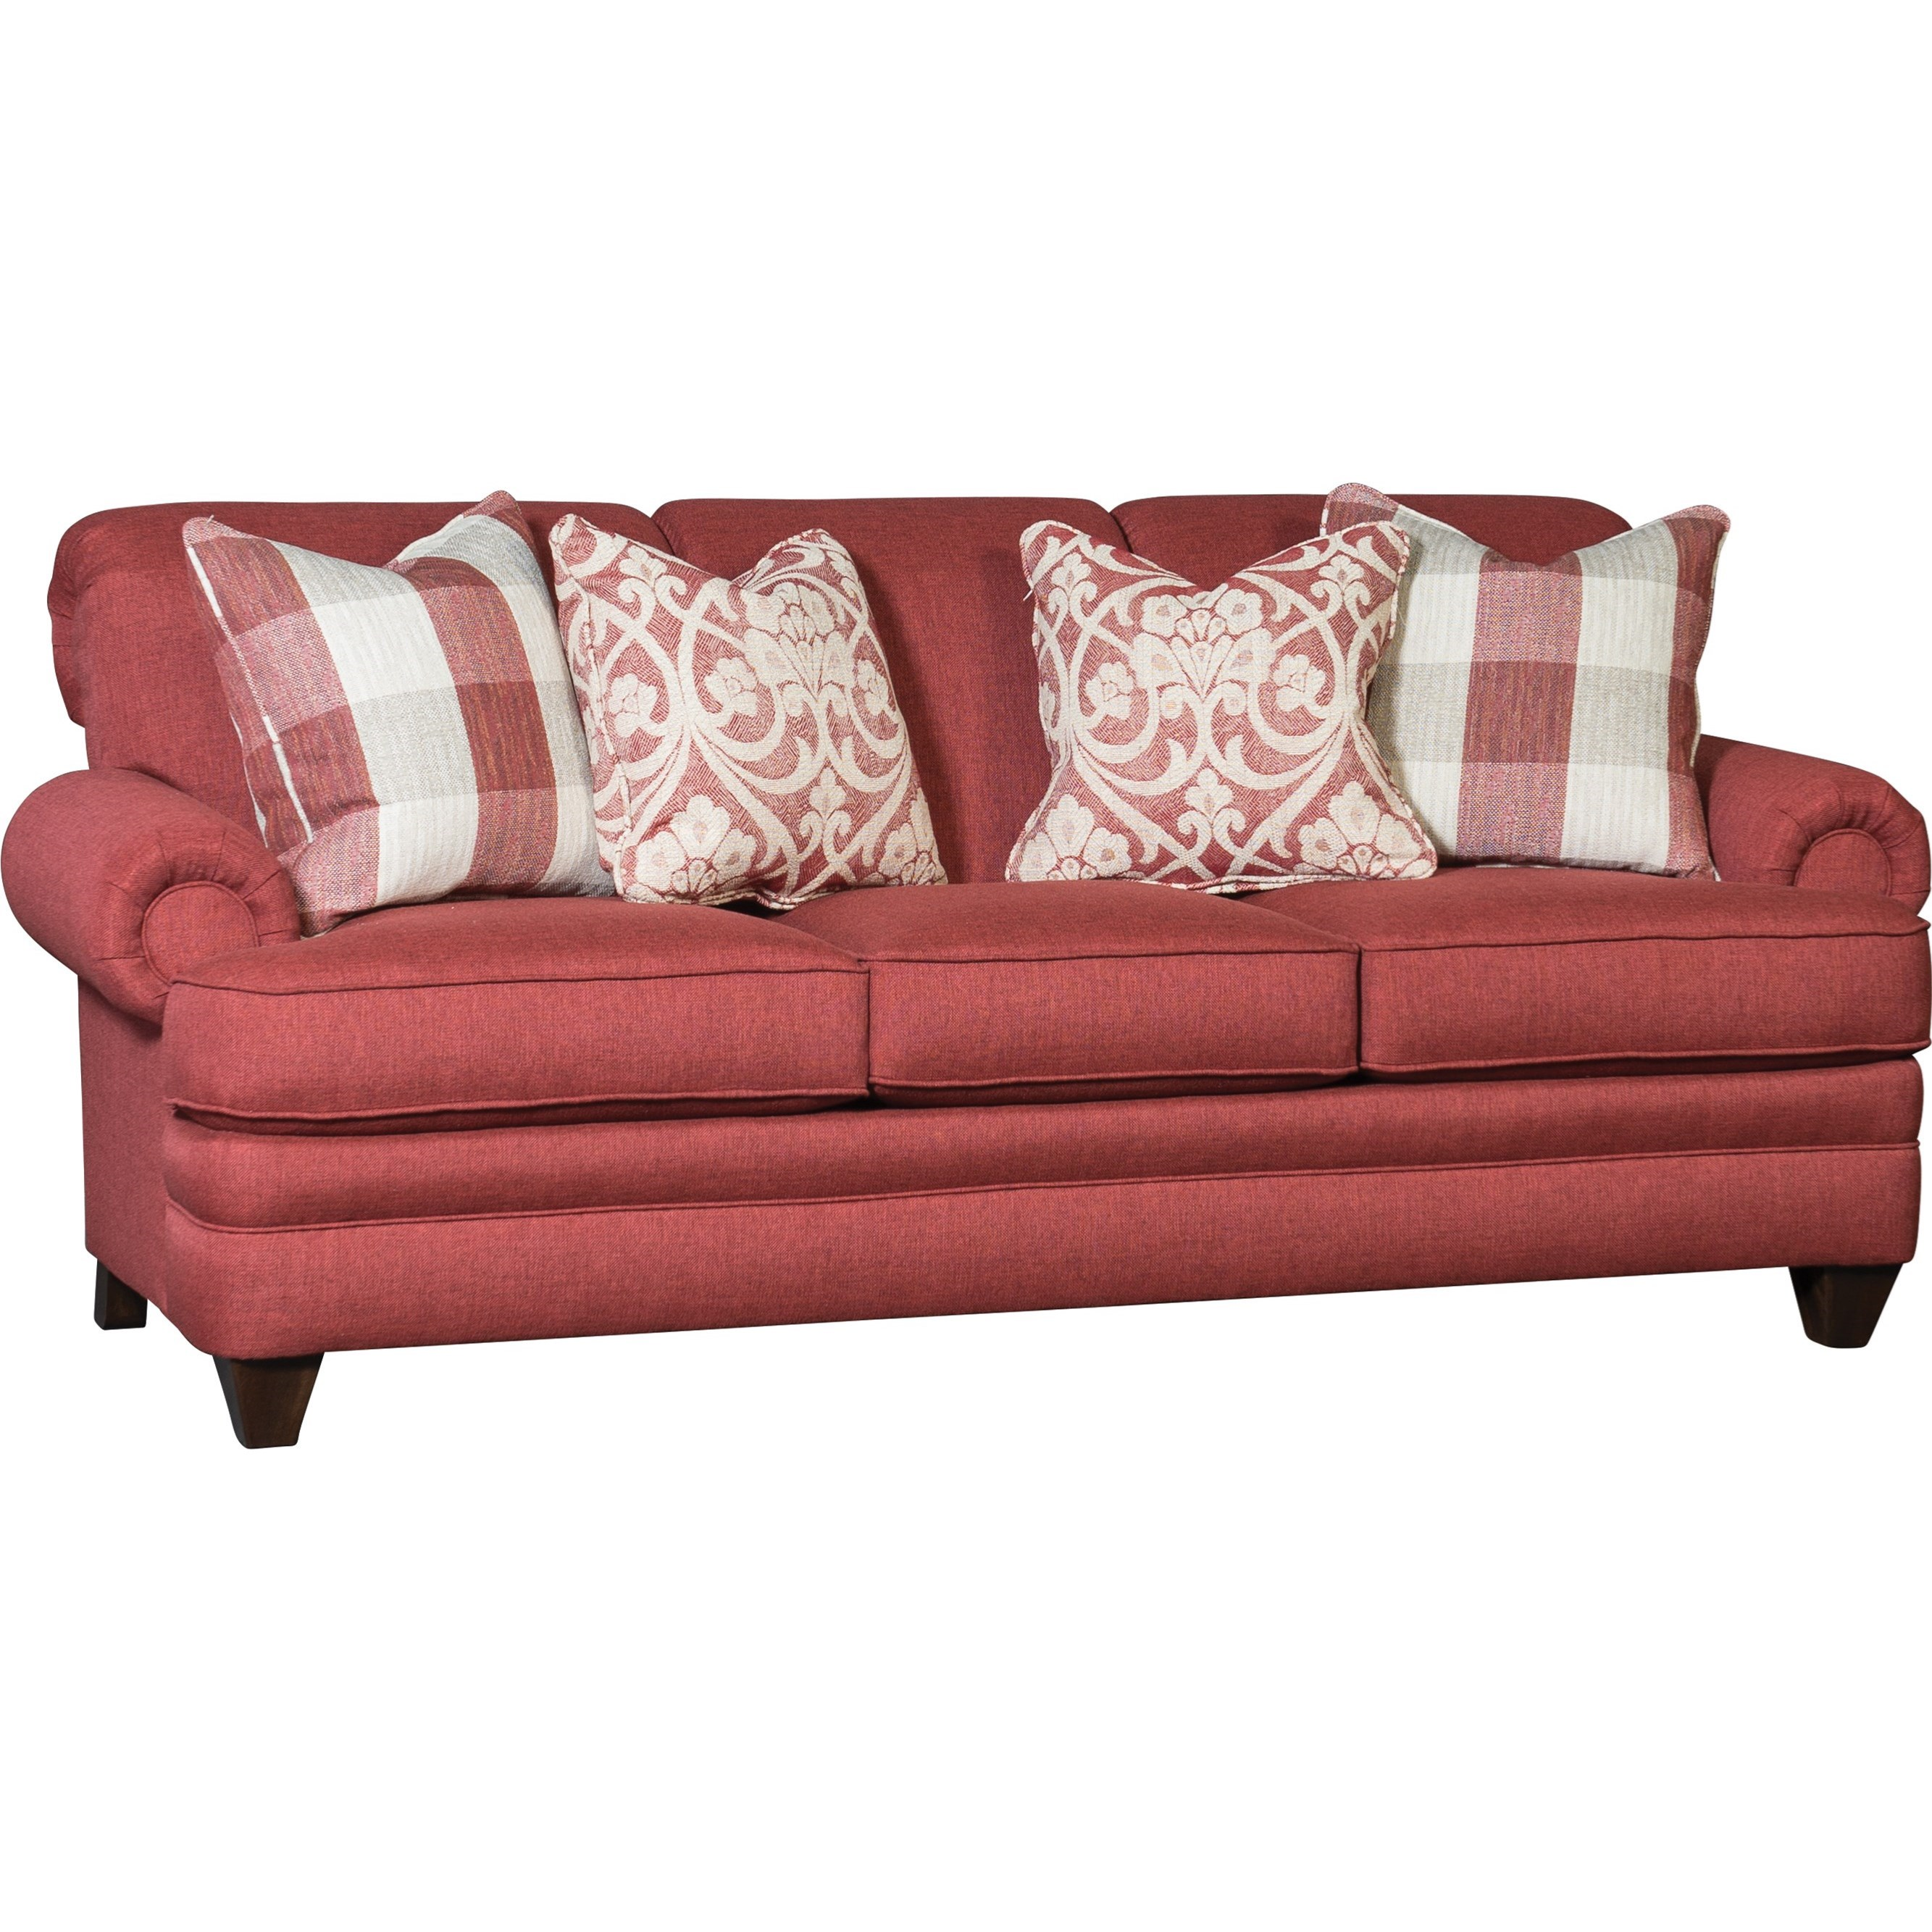 2377 Sofa by Mayo at Wilson's Furniture